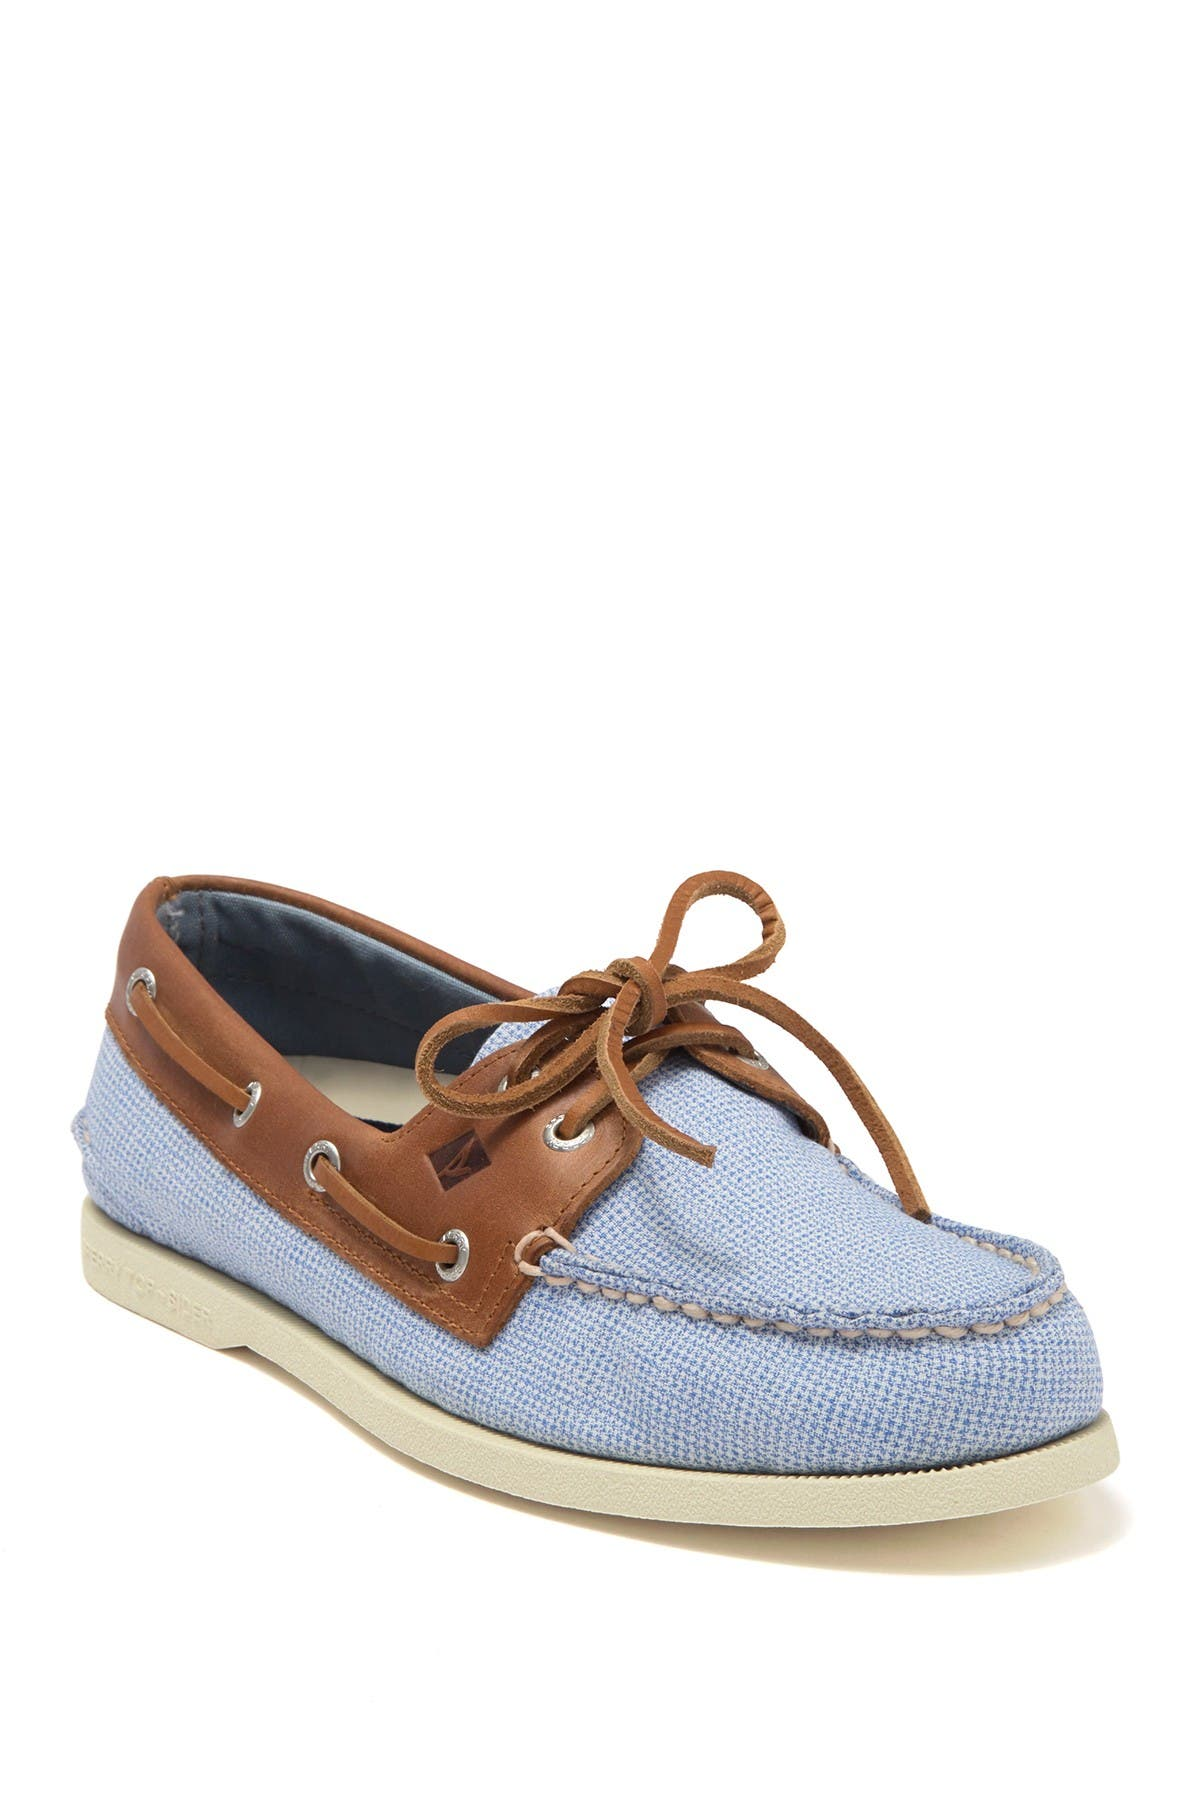 Image of Sperry Authentic Original 2-EYE Gingham Boat Shoe